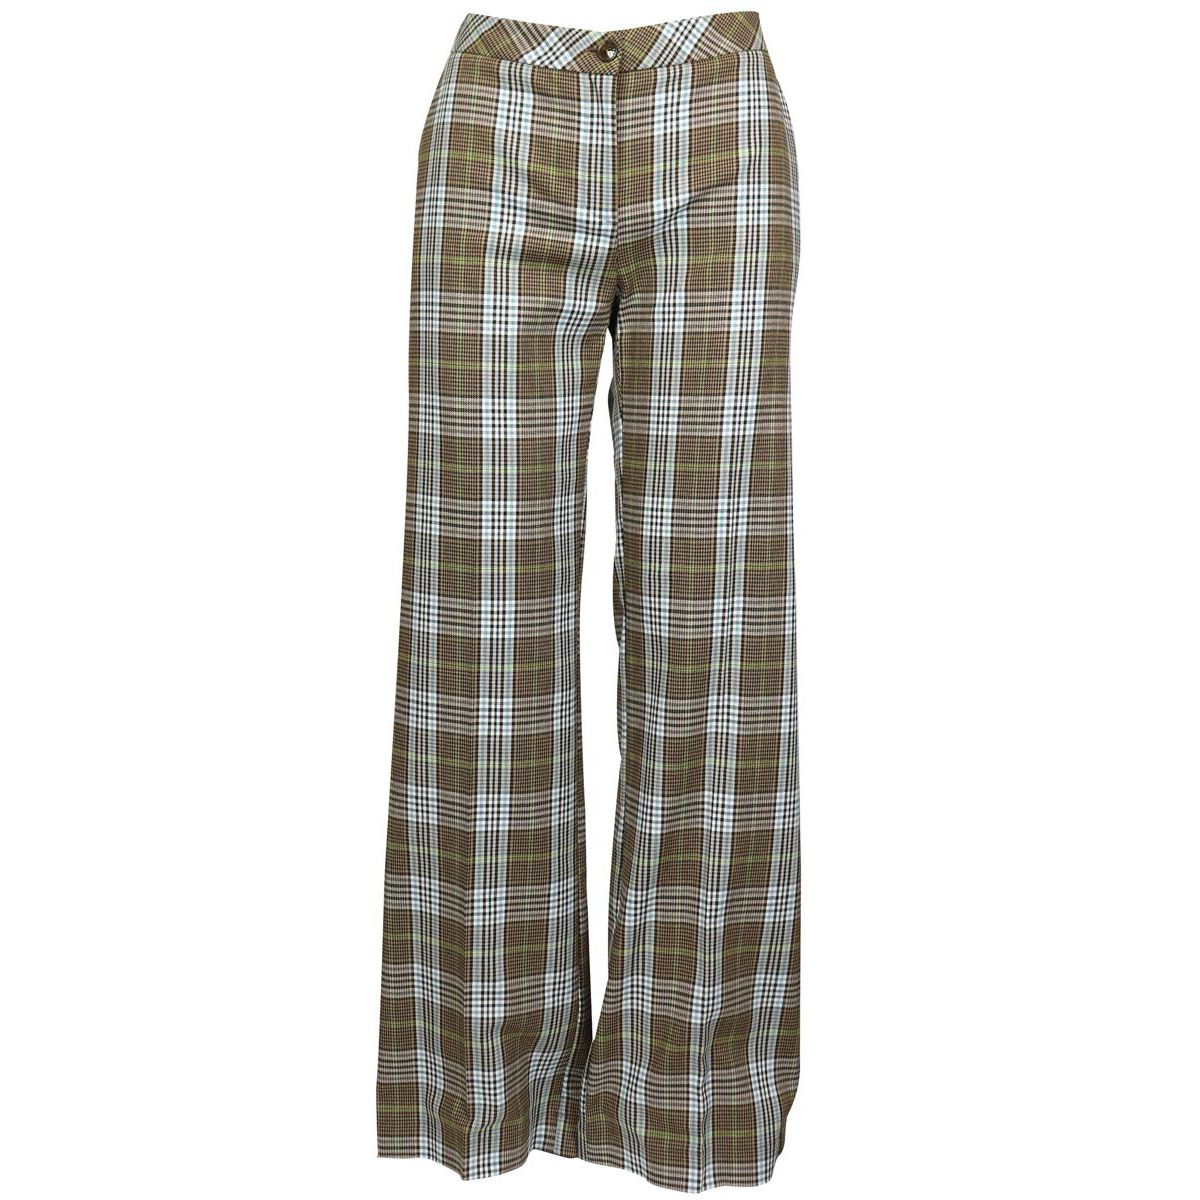 High-waisted viscose blend trousers with check pattern Beige check Patrizia Pepe